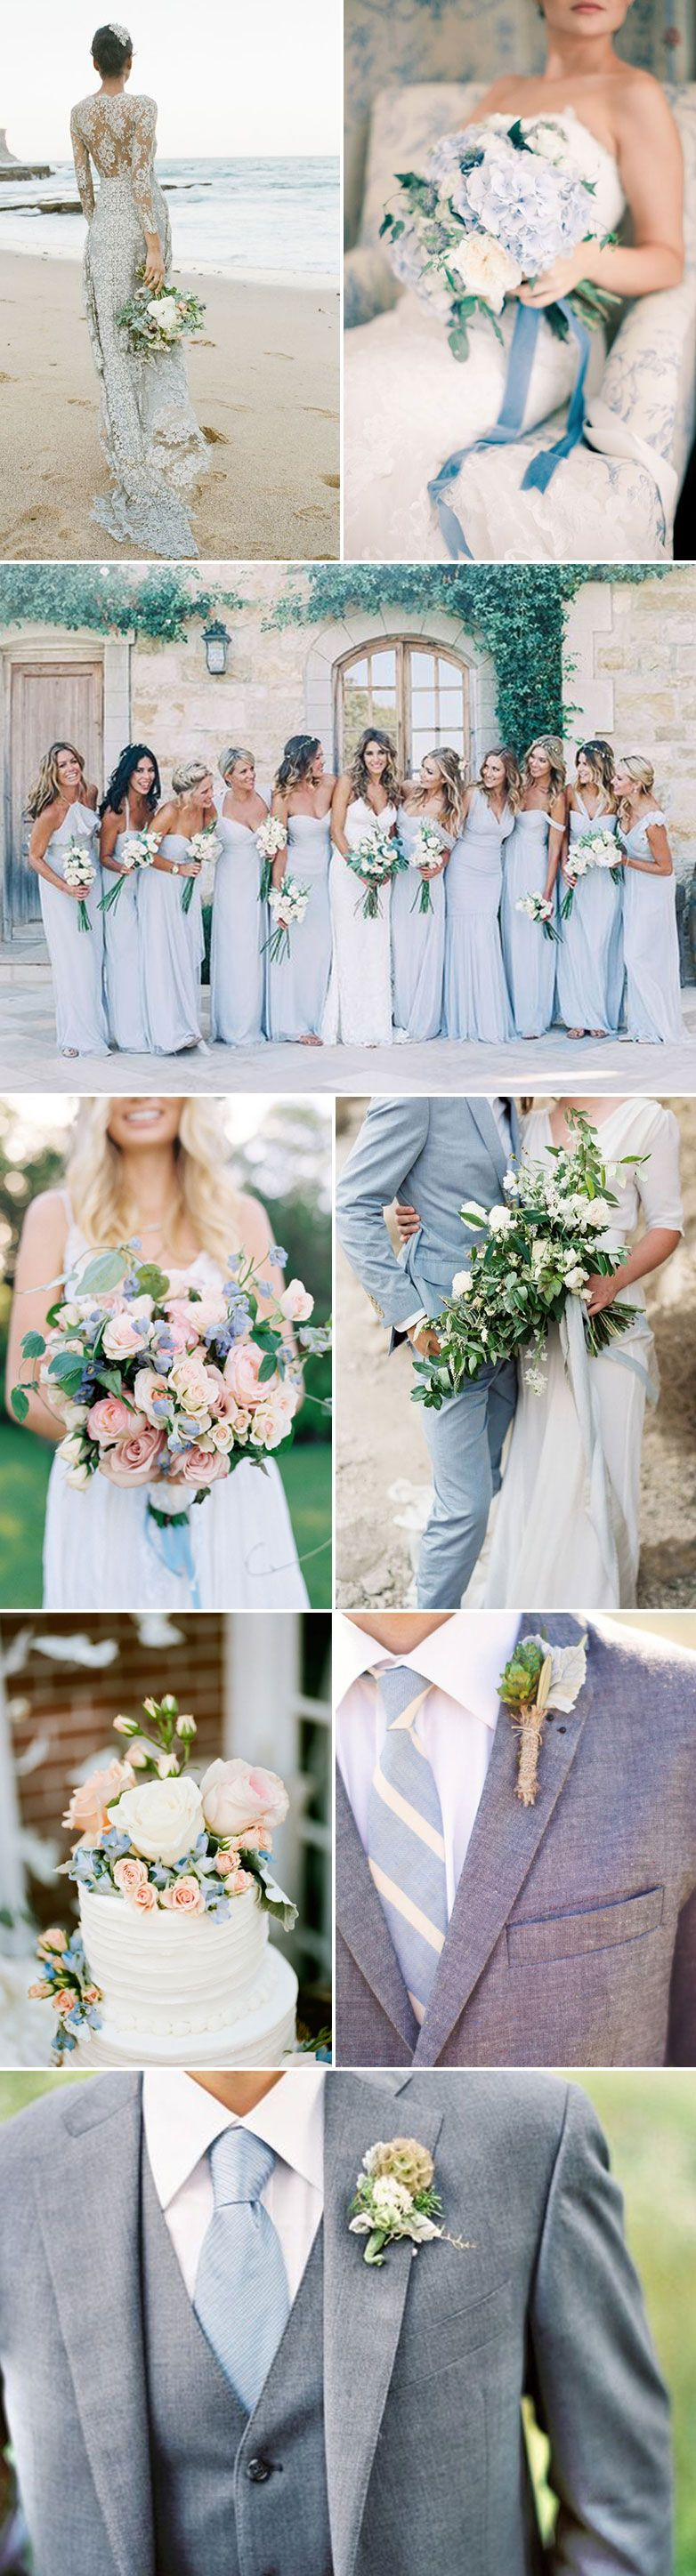 Dial Up The Charm Factor With A Wedding In Palette Of Baby Blue And Linen Whites Soft Shade Is Everyone S Favorite Hue